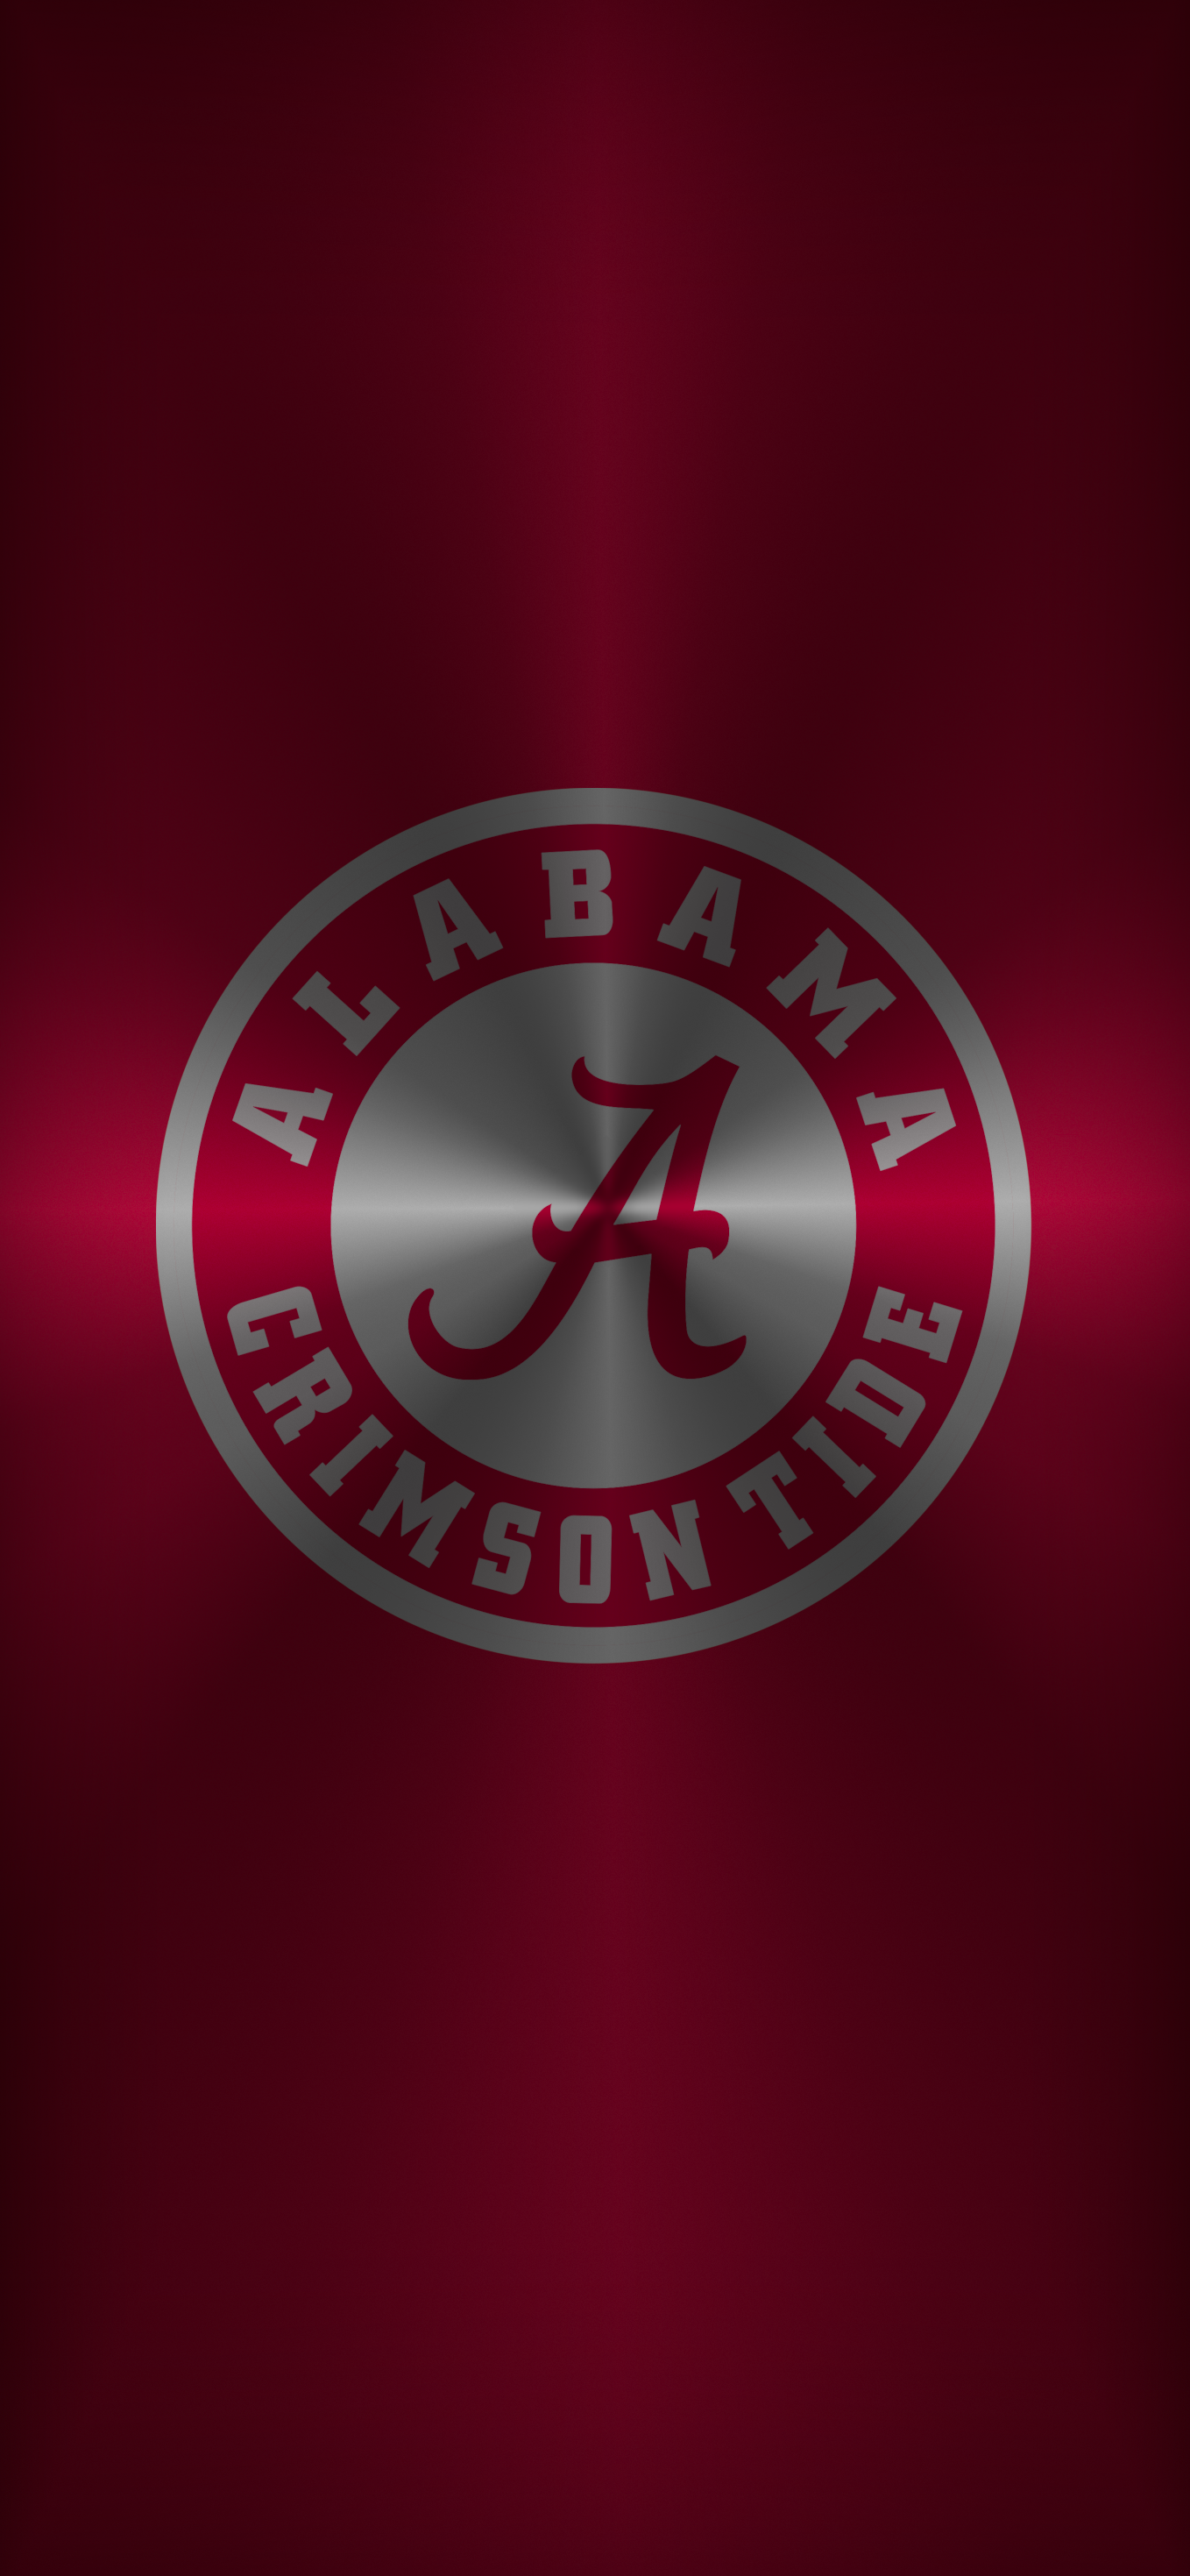 Bama Logo 14 Metal Alabama Crimson Tide Logo Alabama Wallpaper Alabama Crimson Tide